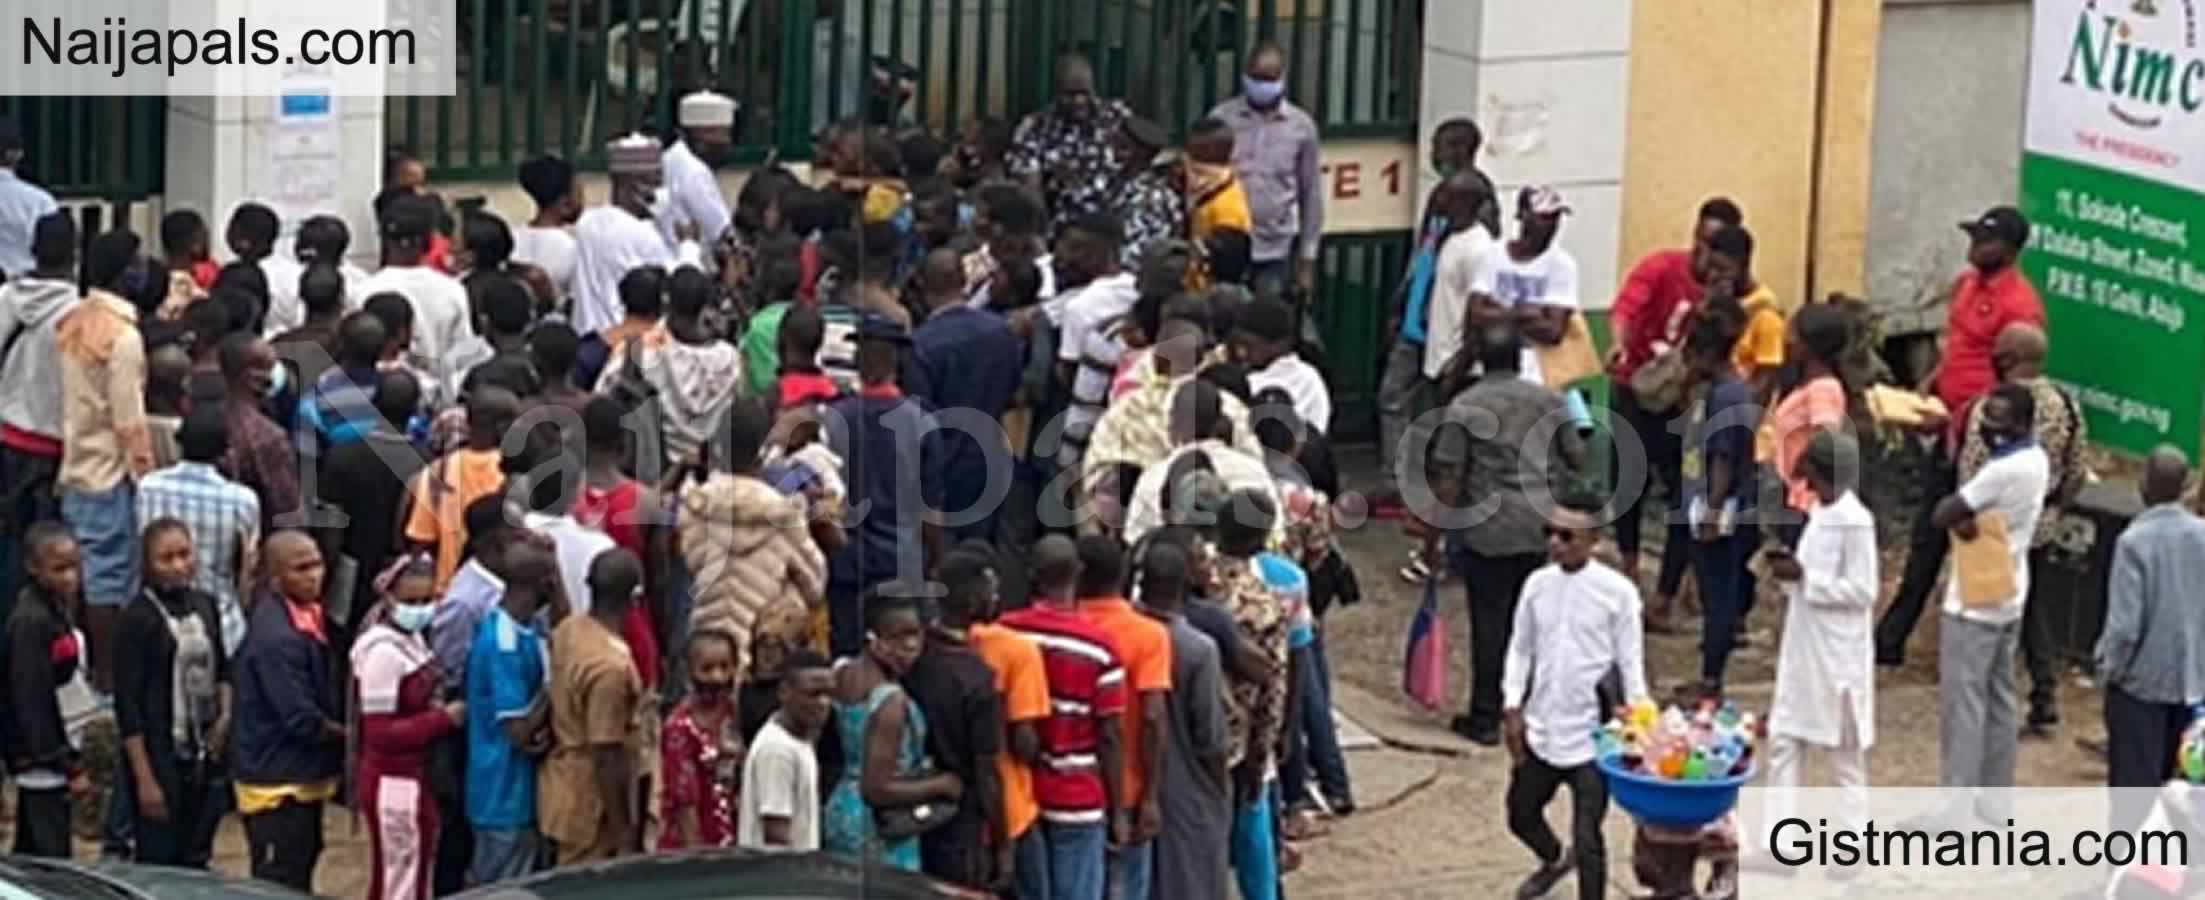 <img alt='.' class='lazyload' data-src='https://img.gistmania.com/emot/photo.png' /> PHOTOS: <b>Nigerians Shun Social Distancing As They Storm NIMC Office in Abuja For National ID</b>